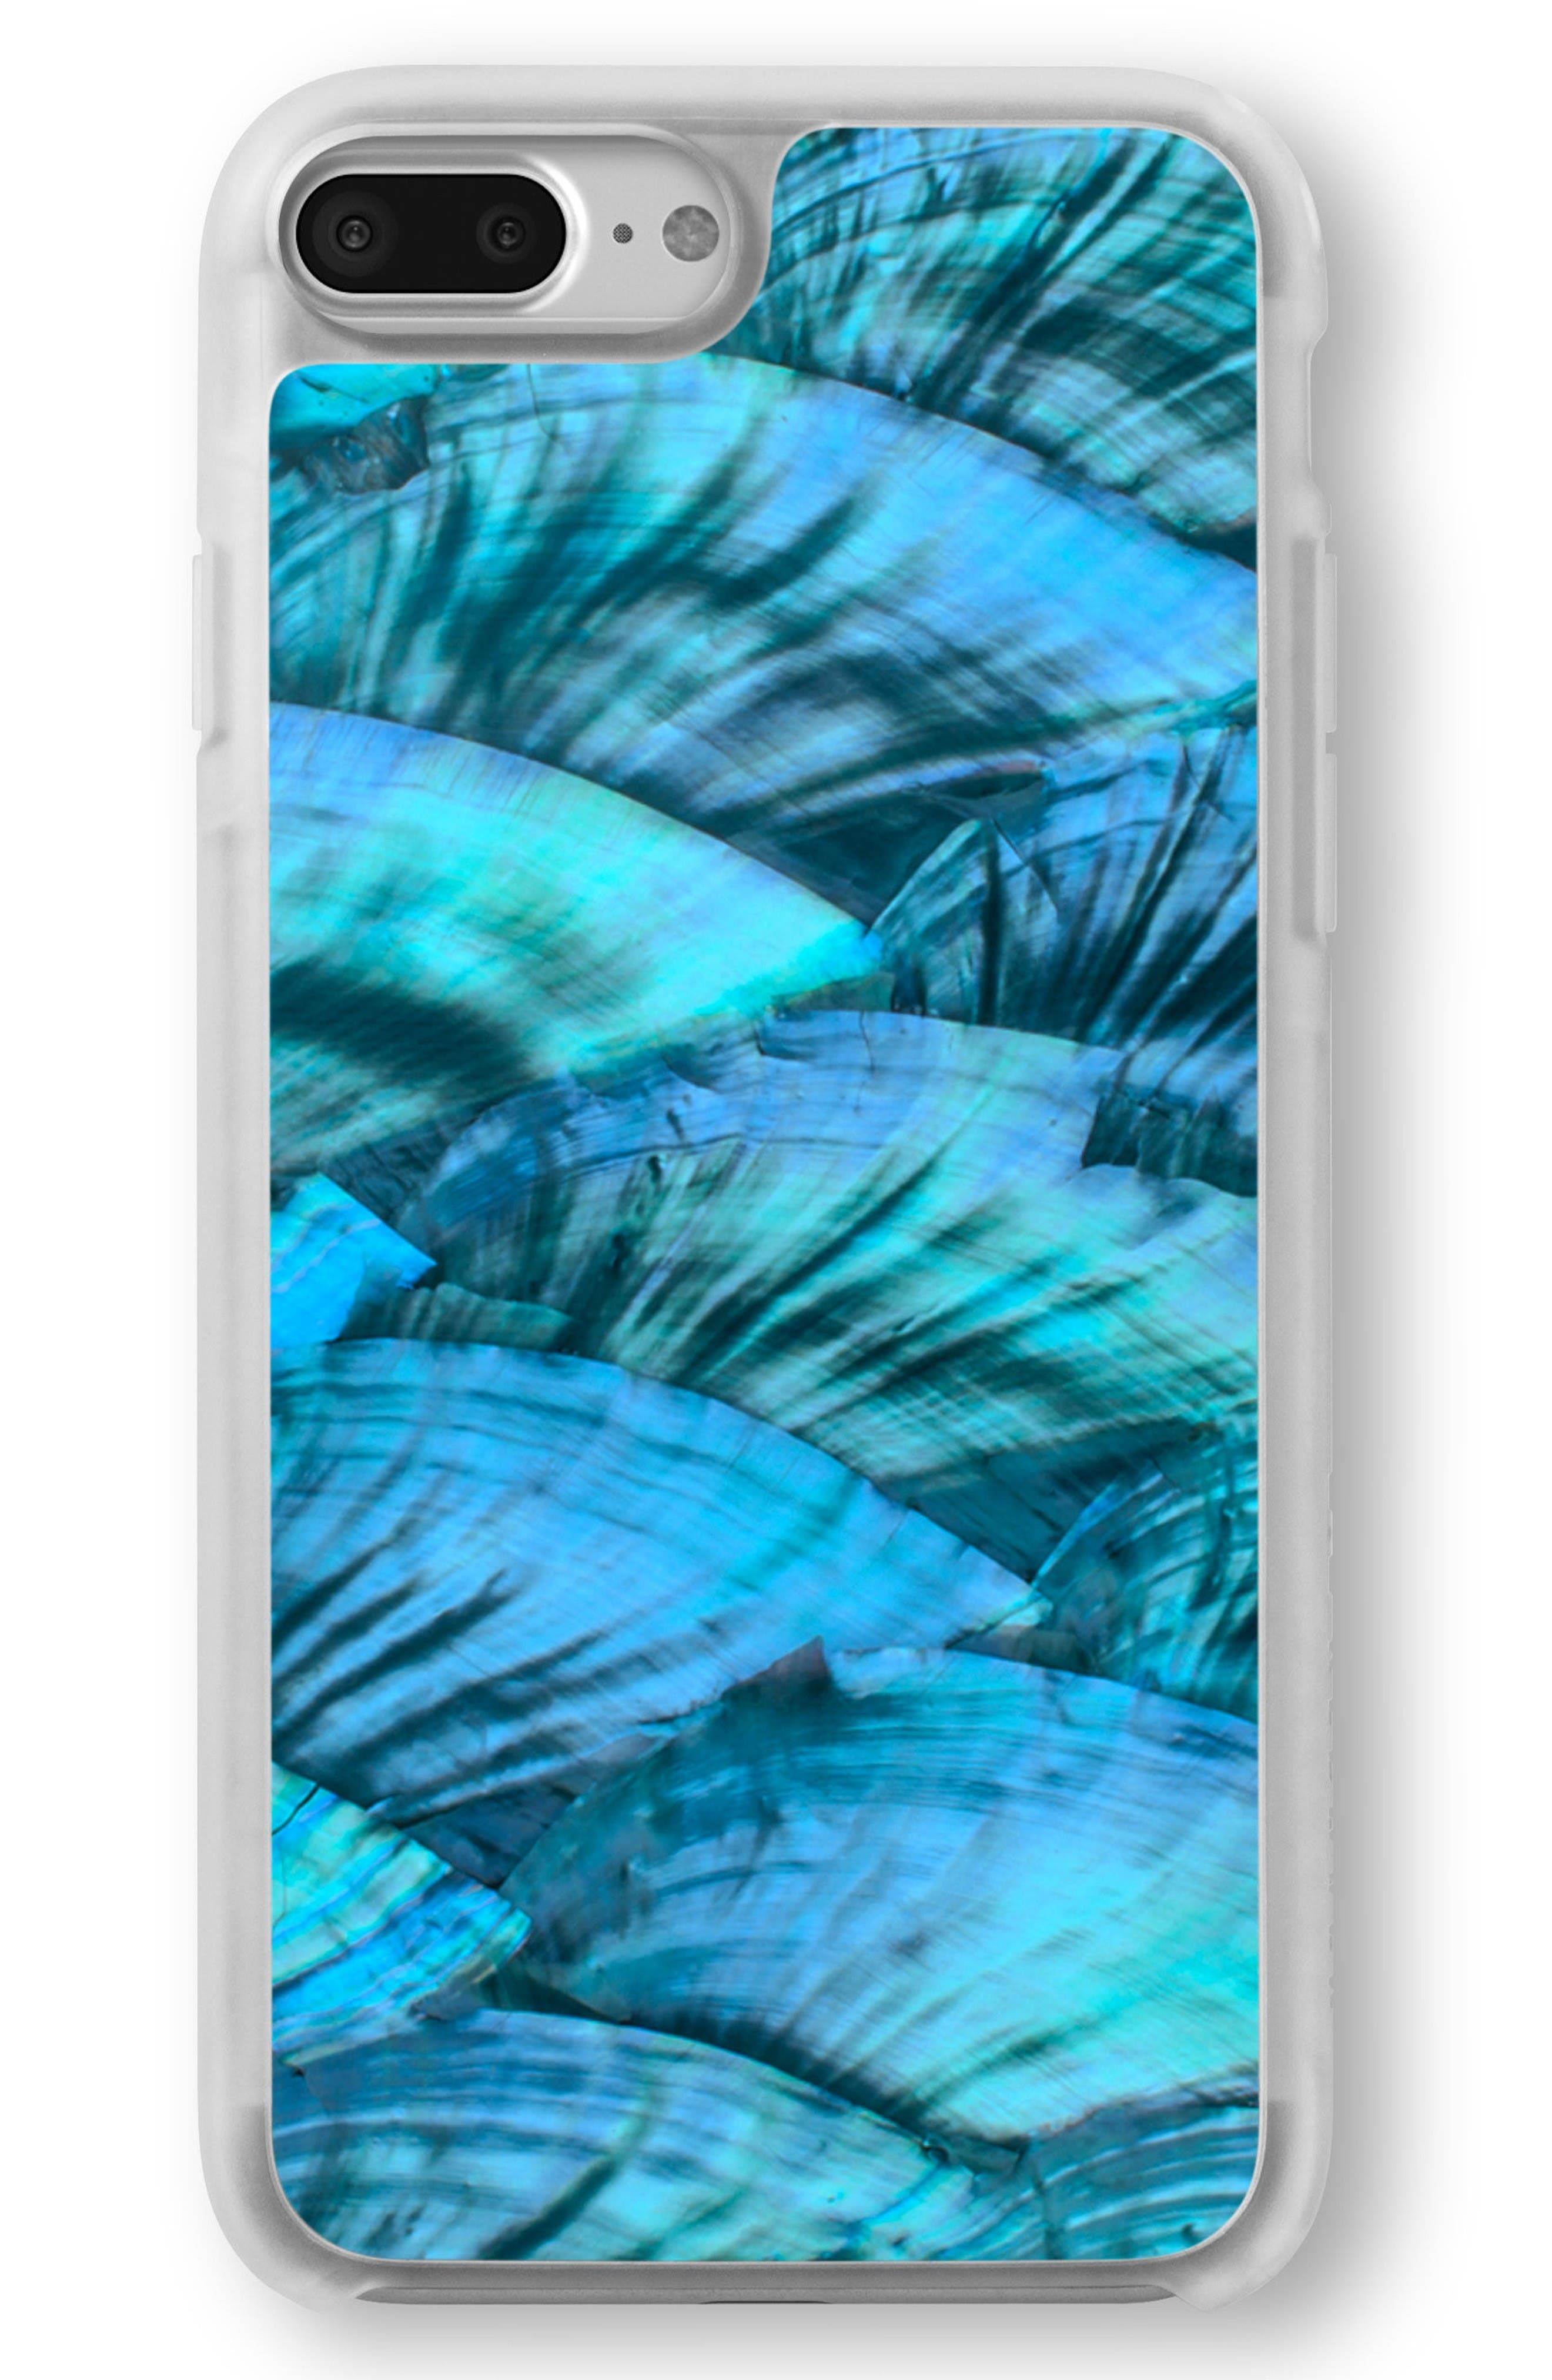 Recover Blue Abalone iPhone 6/6s/7/8 & 6/6s/7/8 Plus Case